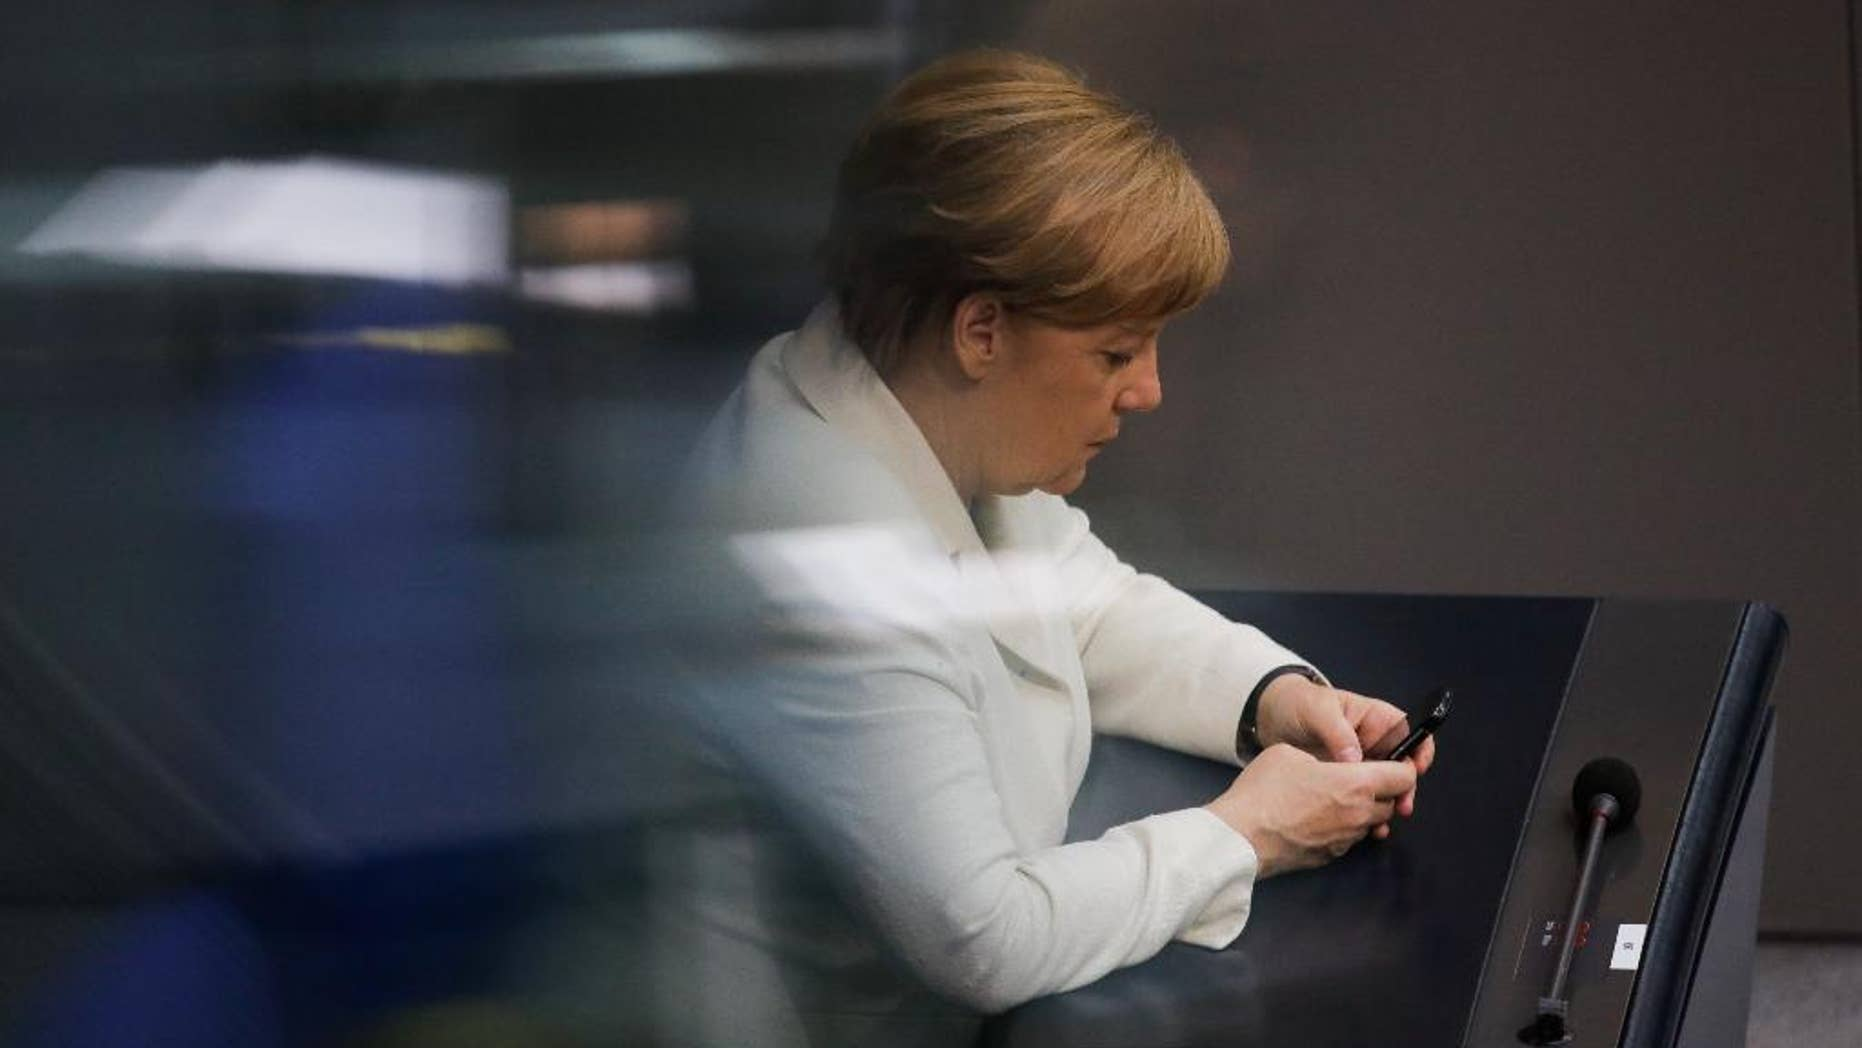 German Chancellor Angela Merkel uses her mobile devices as she attends a debate about a package of new measures to help fight terrorism at the German parliament Bundestag in Berlin, Thursday, June 9, 2016. (AP Photo/Markus Schreiber)